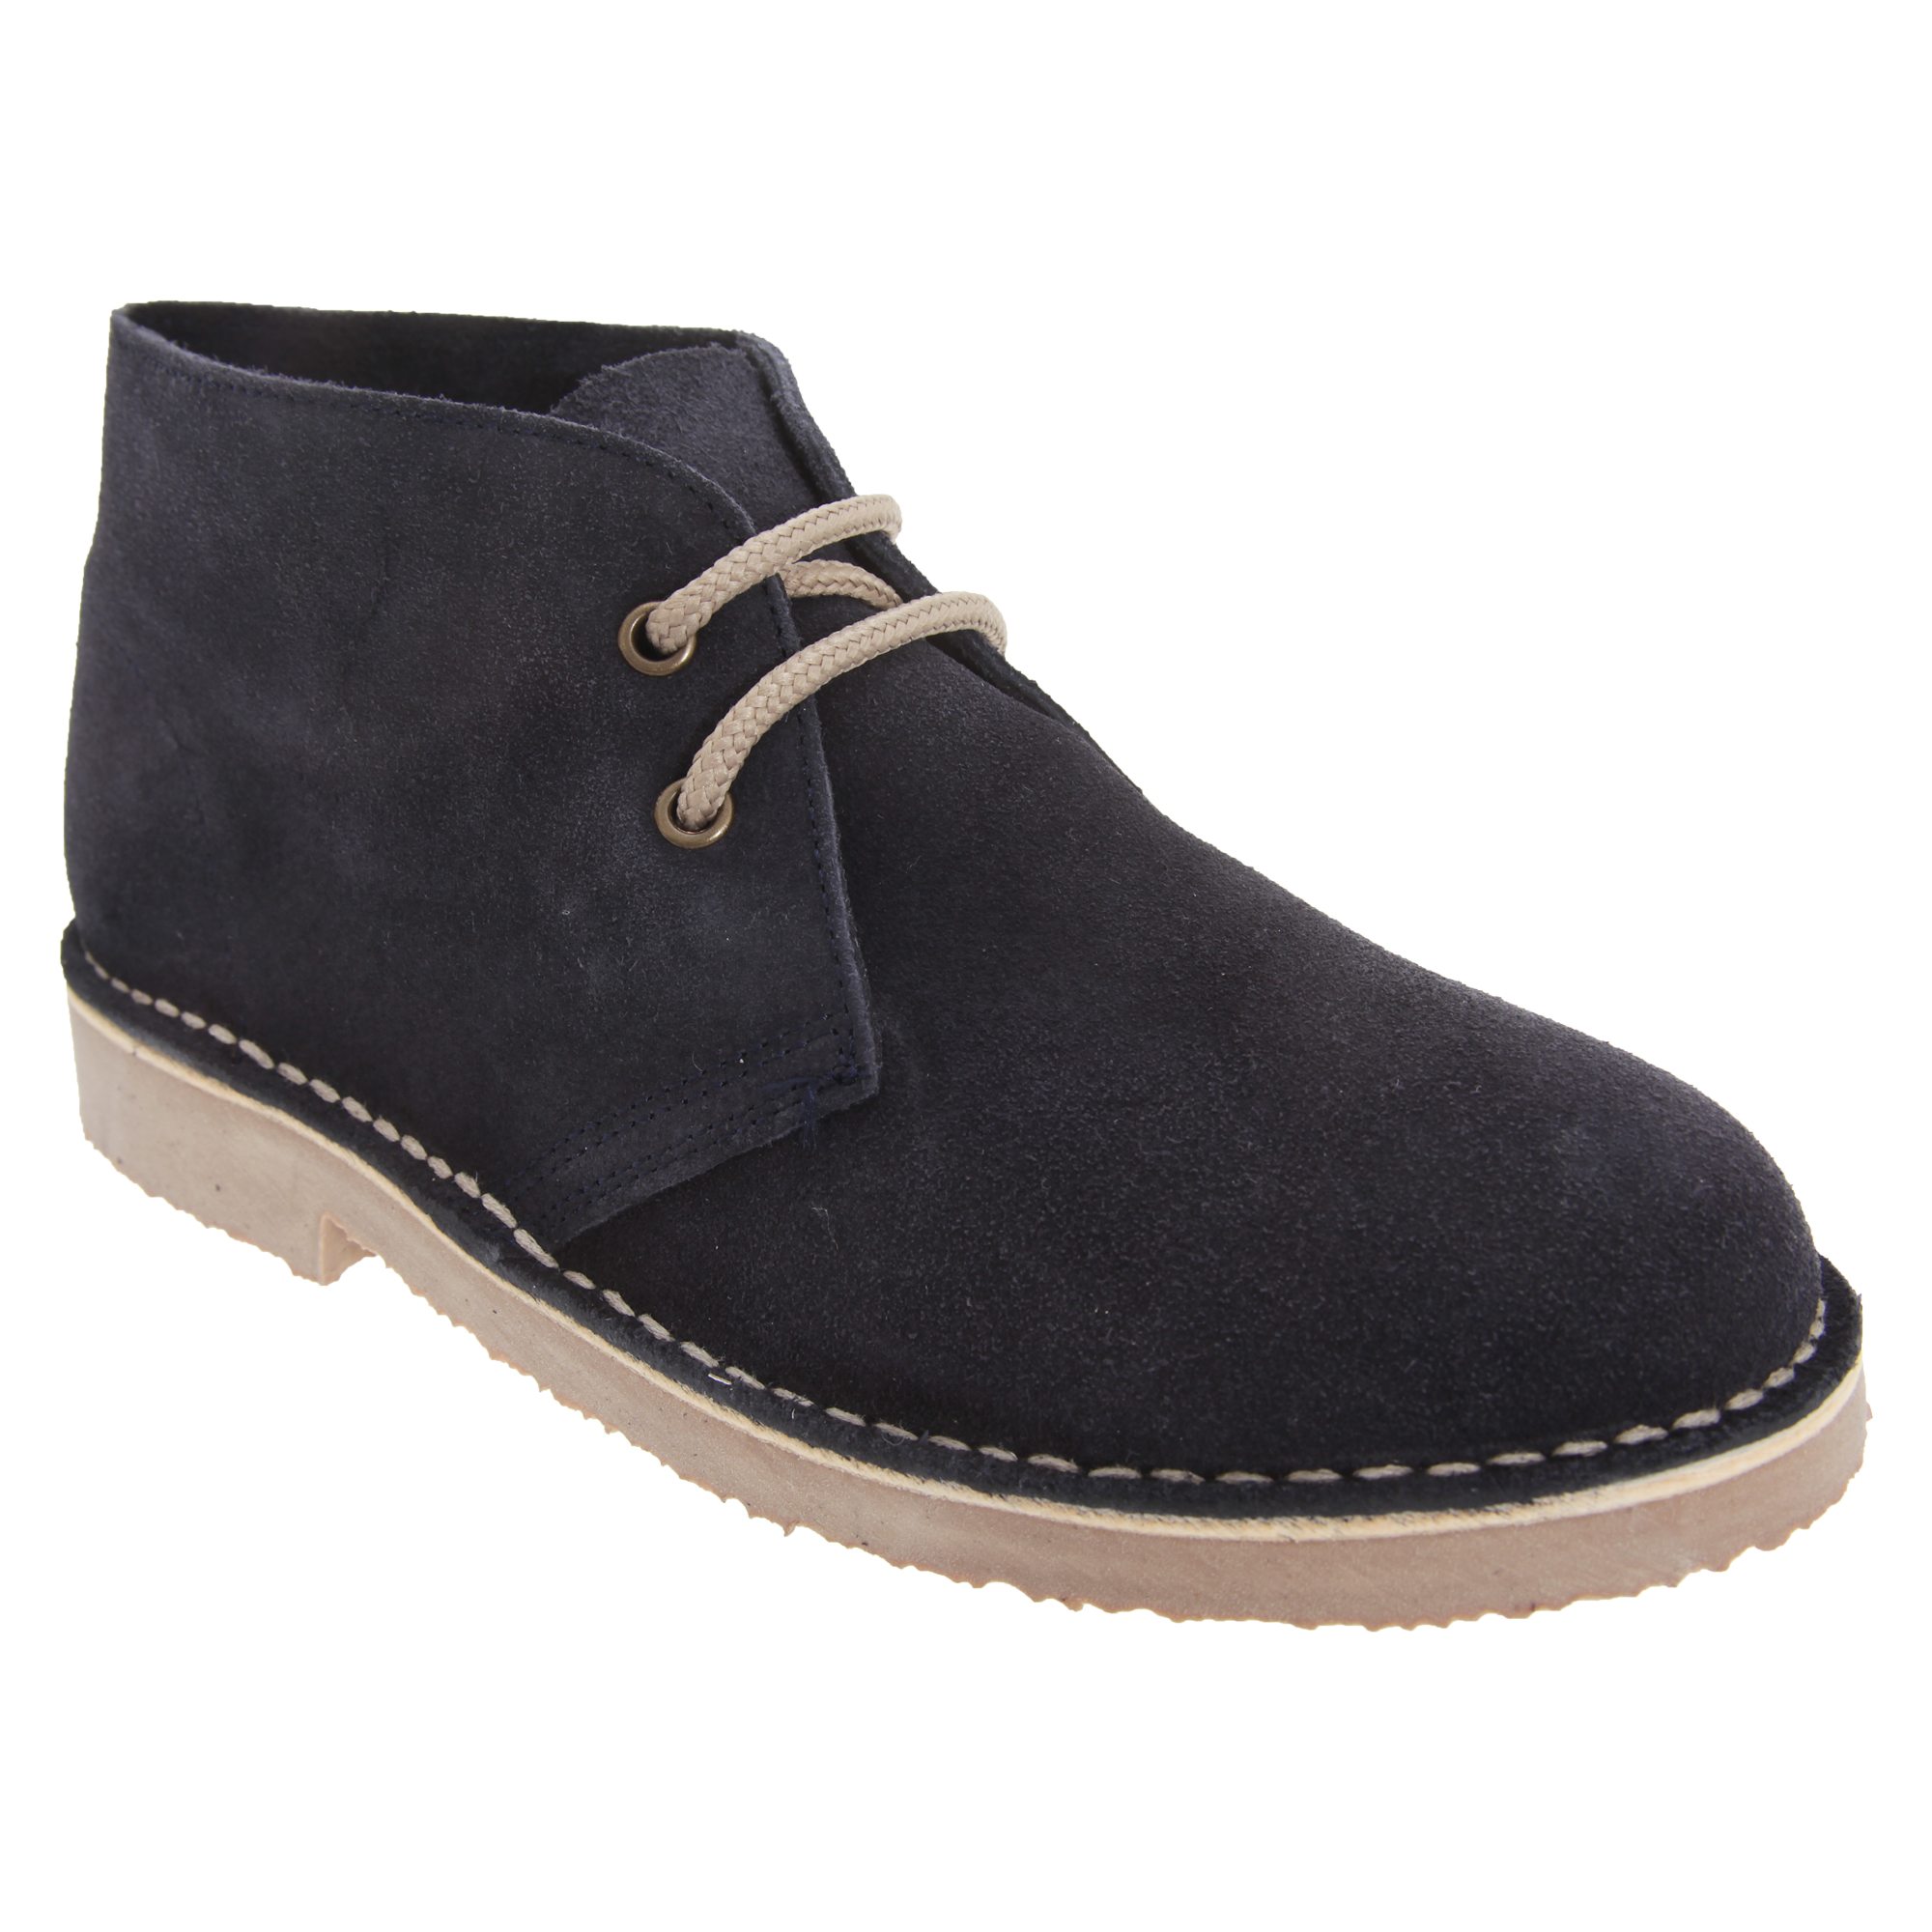 Roamers Adults Unisex Real Suede Unlined Desert Boots (12 UK) (Navy)